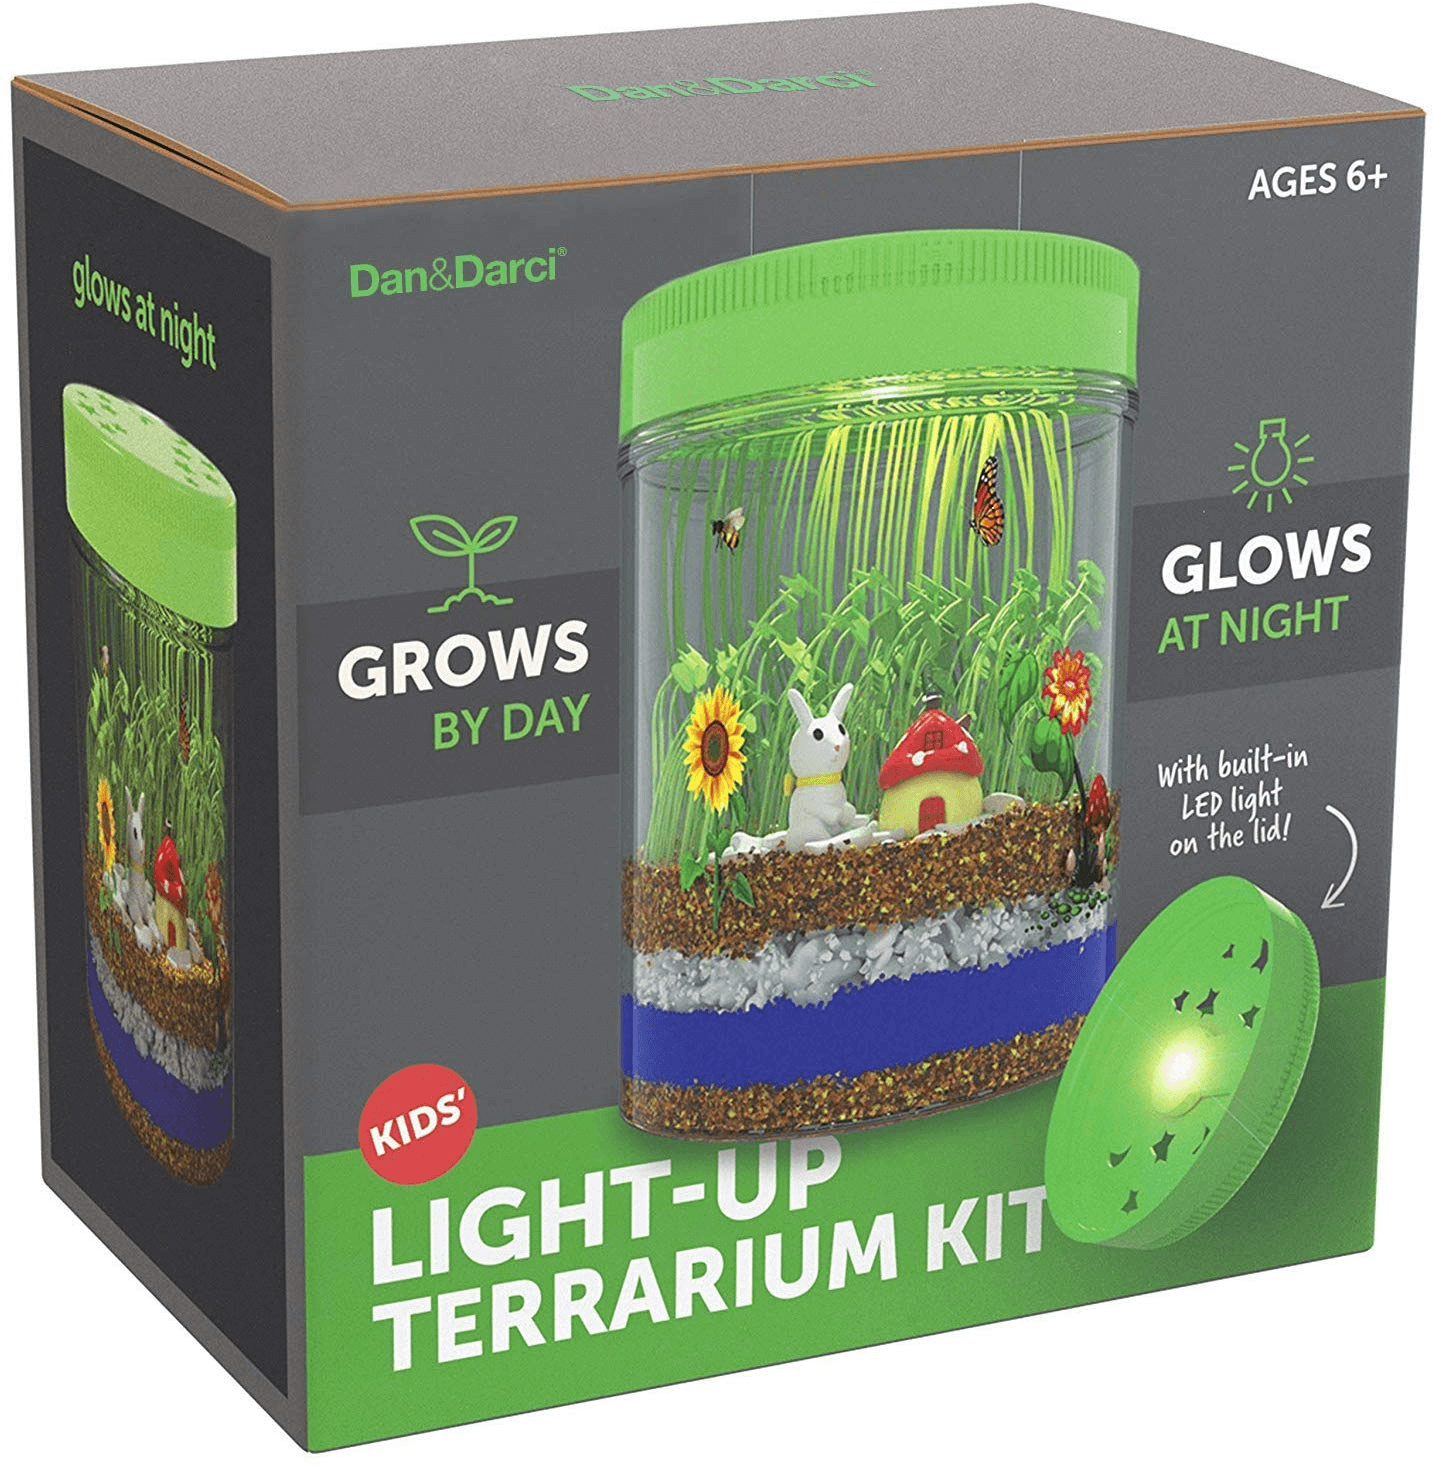 STEM gifts: terrarium